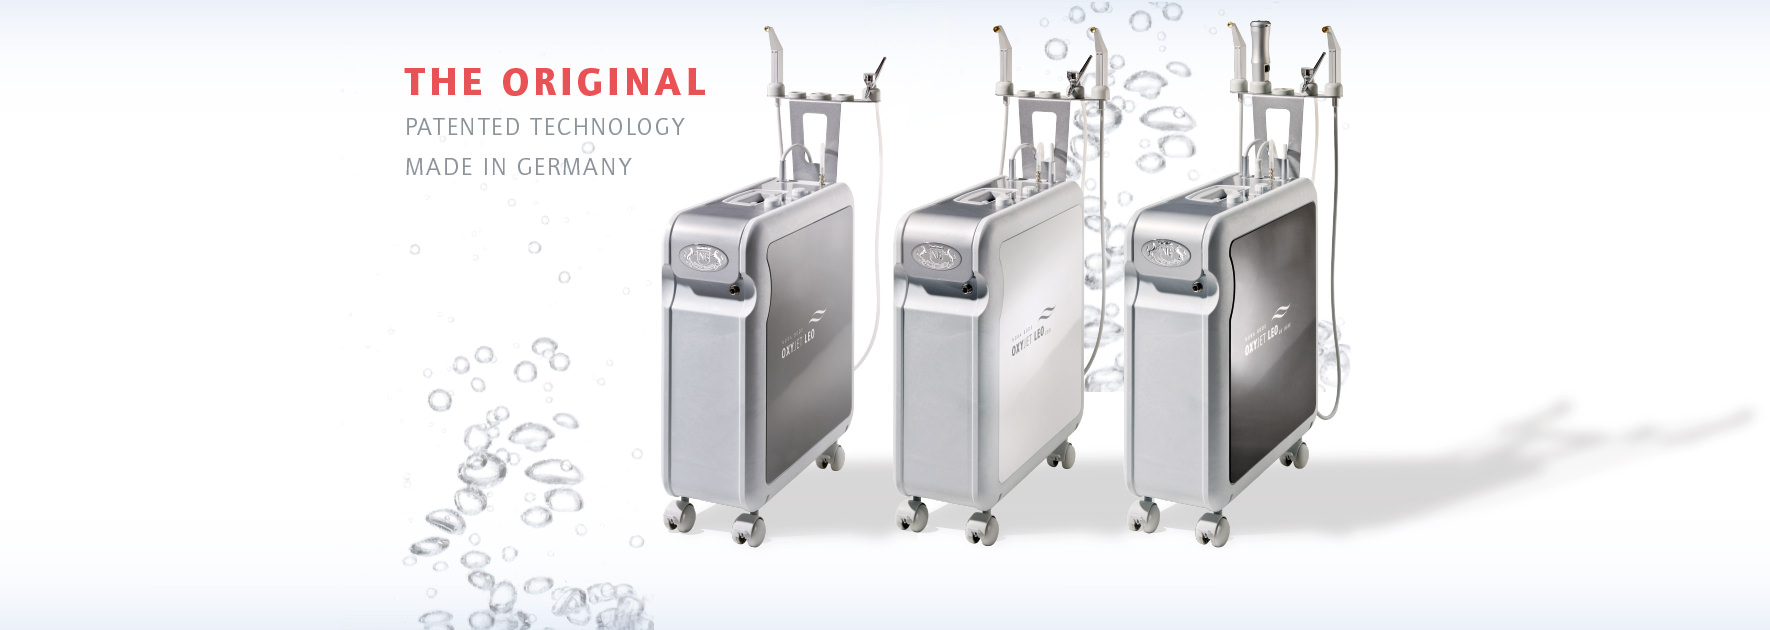 The Original Oxyjet Technology | OXYJET UK